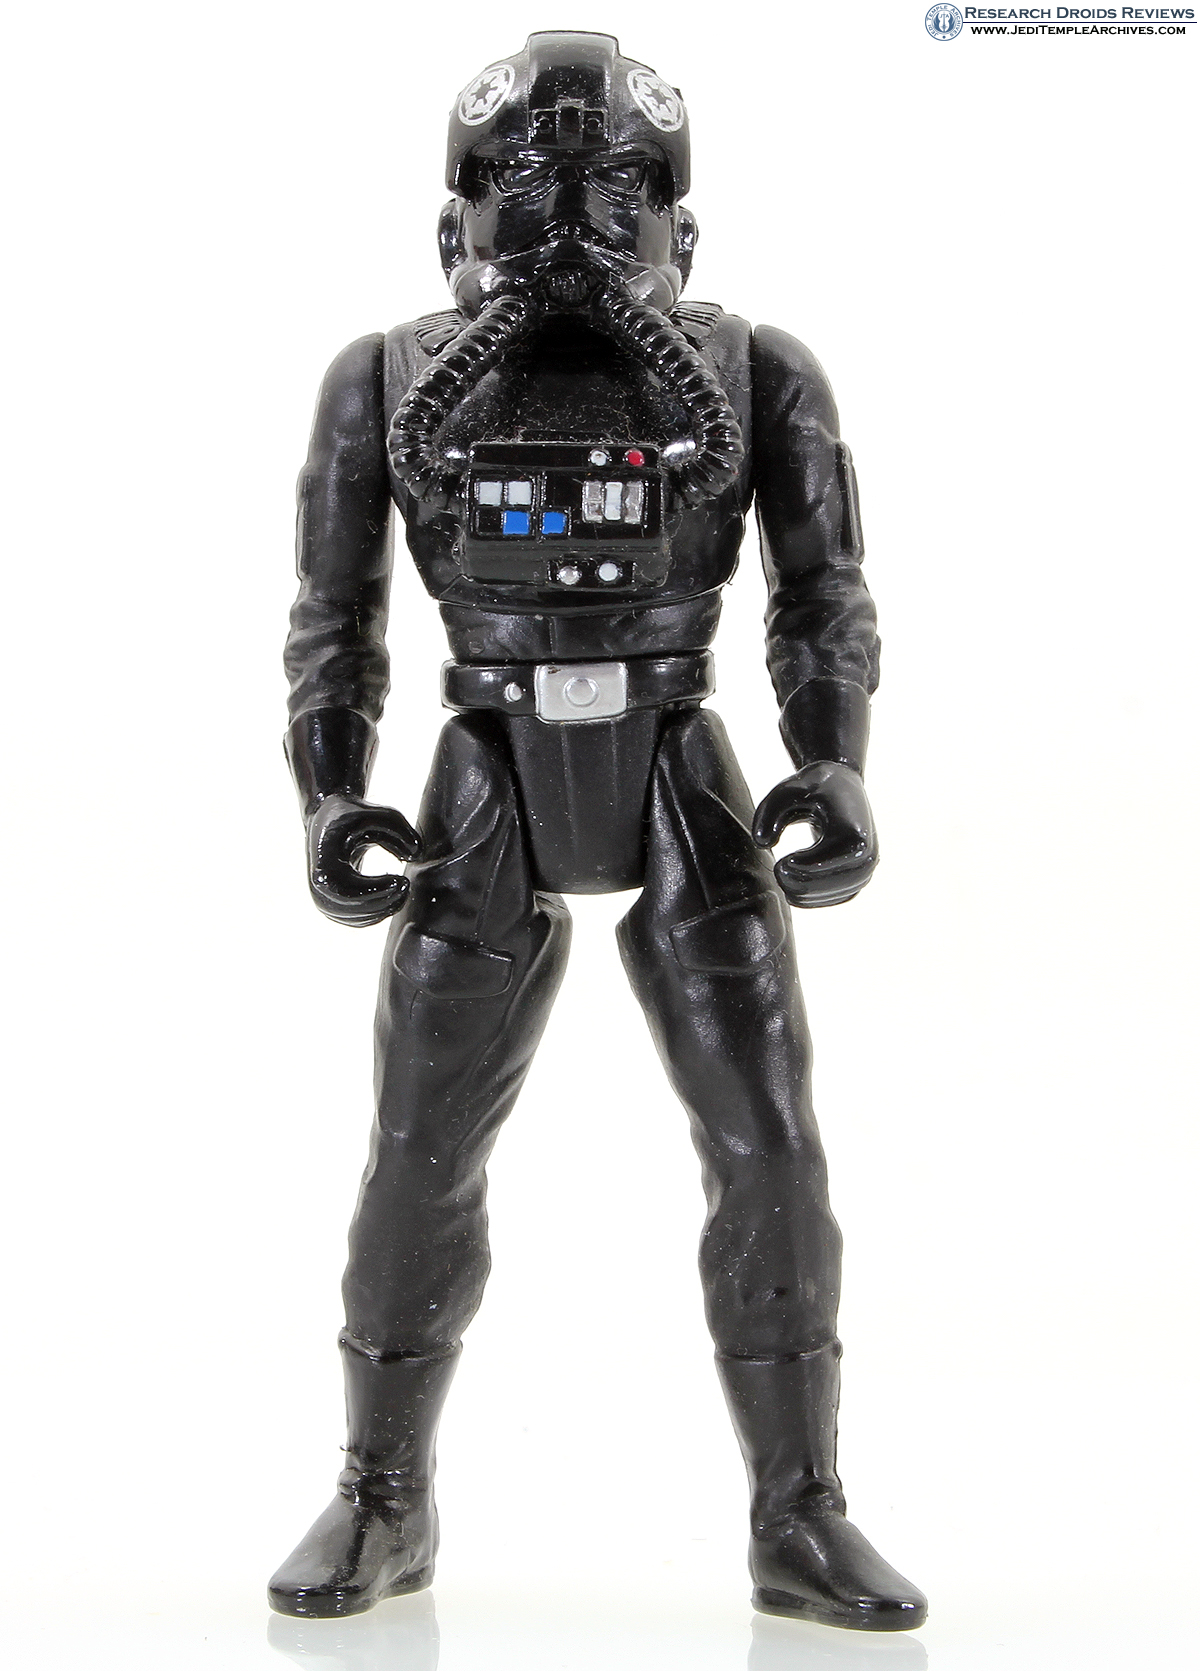 TIE Fighter Pilot (with Warning Label) -